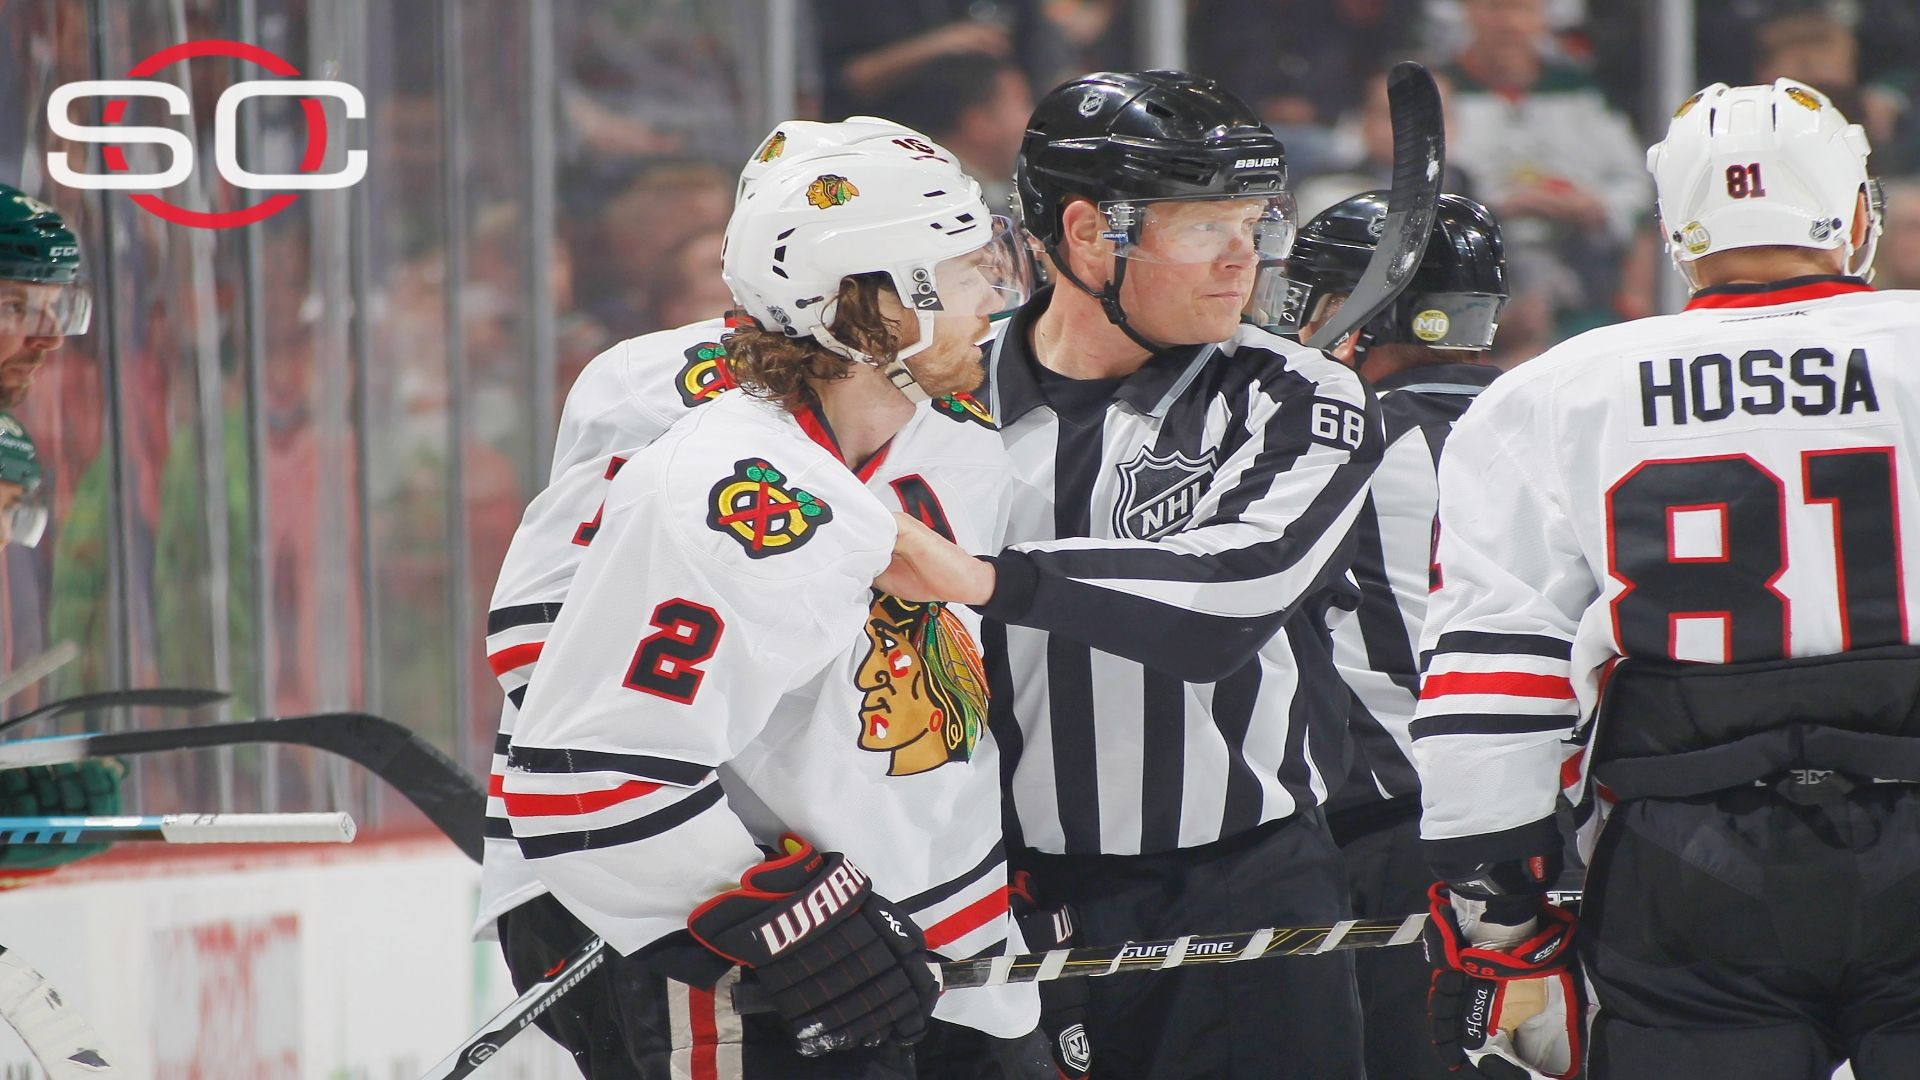 Duncan Keith suspension provides him rest